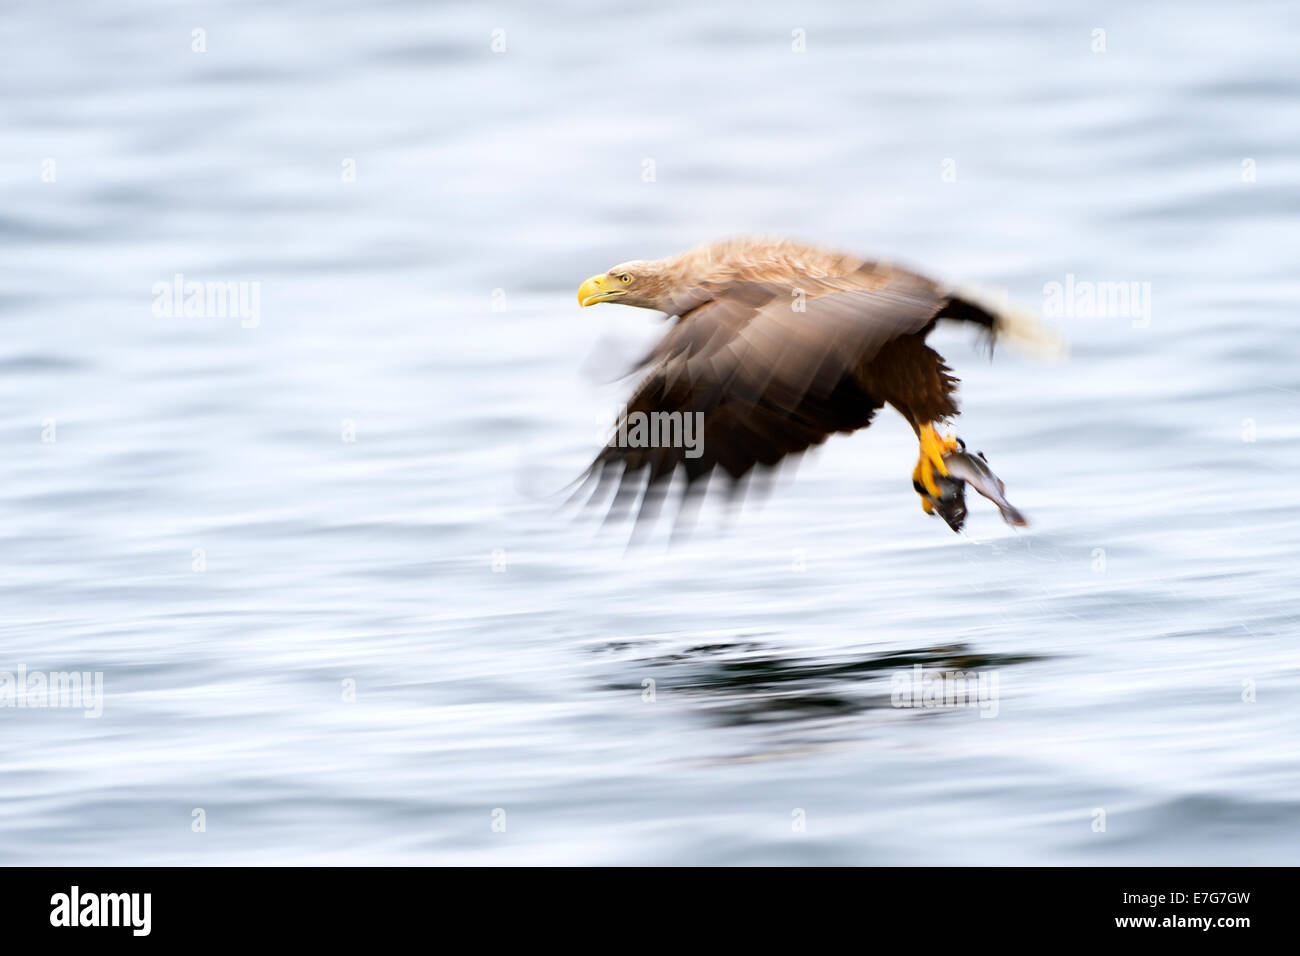 White-tailed eagle (Haliaeetus albicilla) catching fish in Norwegian bay with slow shutterspeed. - Stock Image